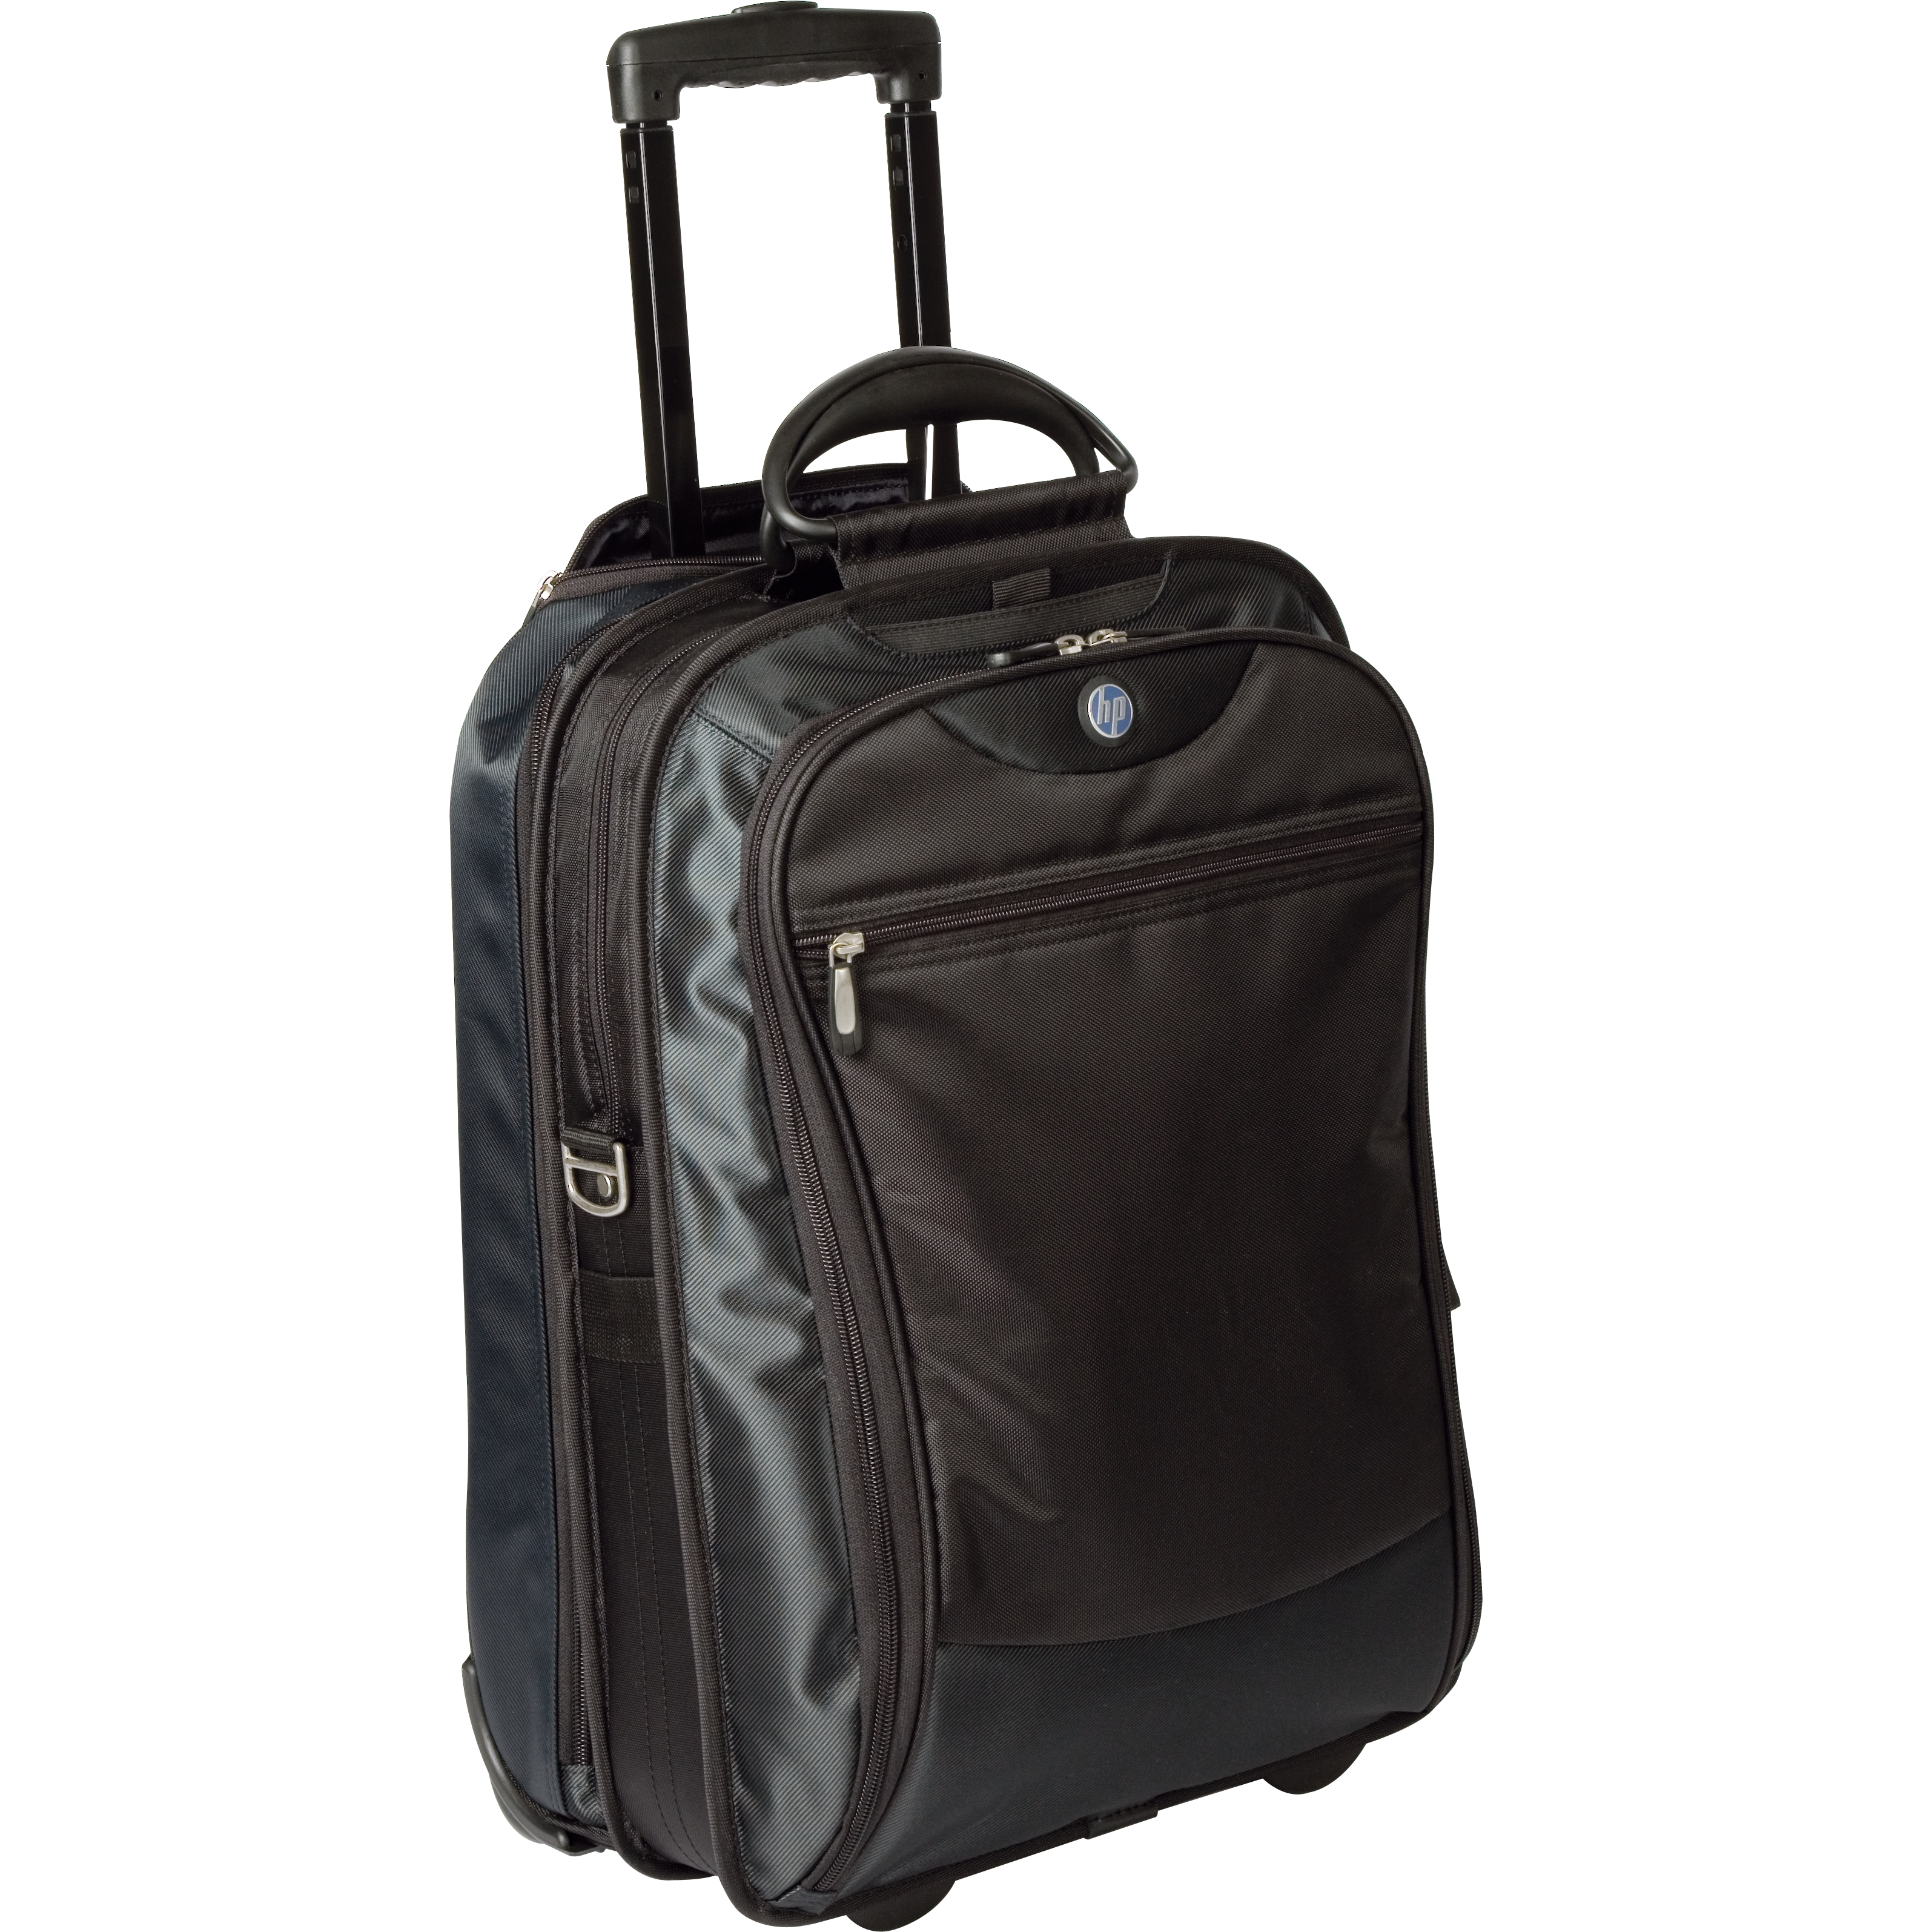 Corporate Travel Bags Online